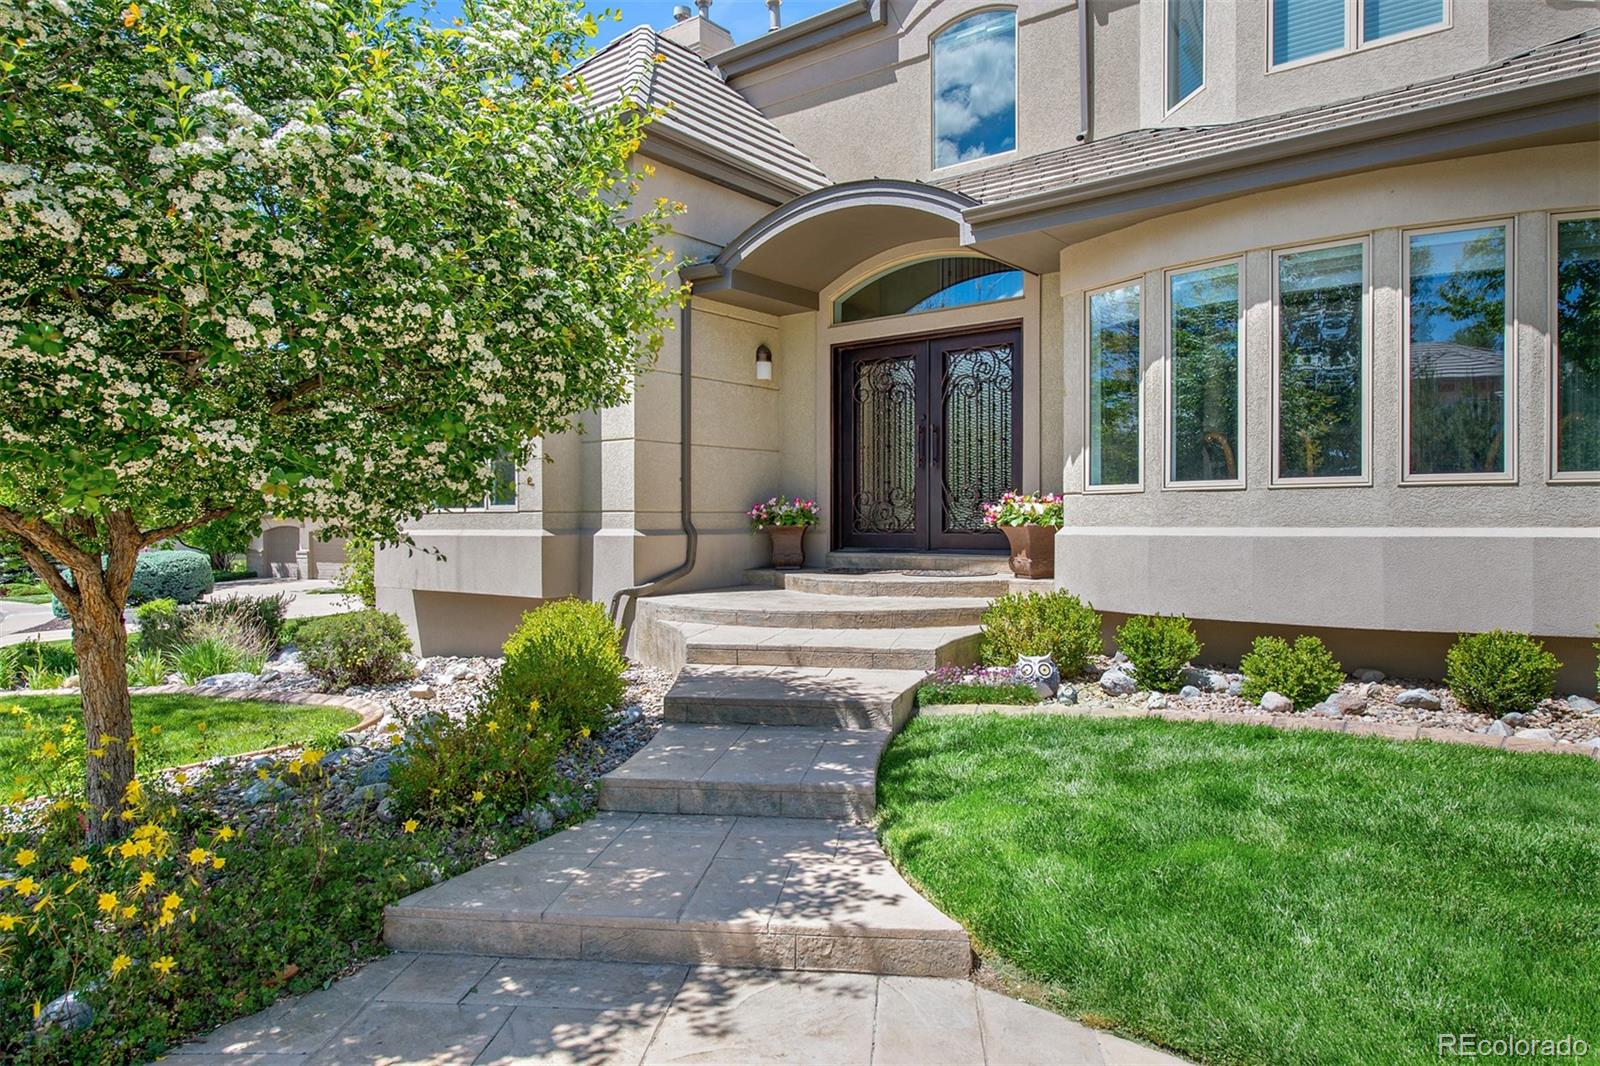 MLS# 7642553 - 4 - 3575 W 110th Place, Westminster, CO 80031